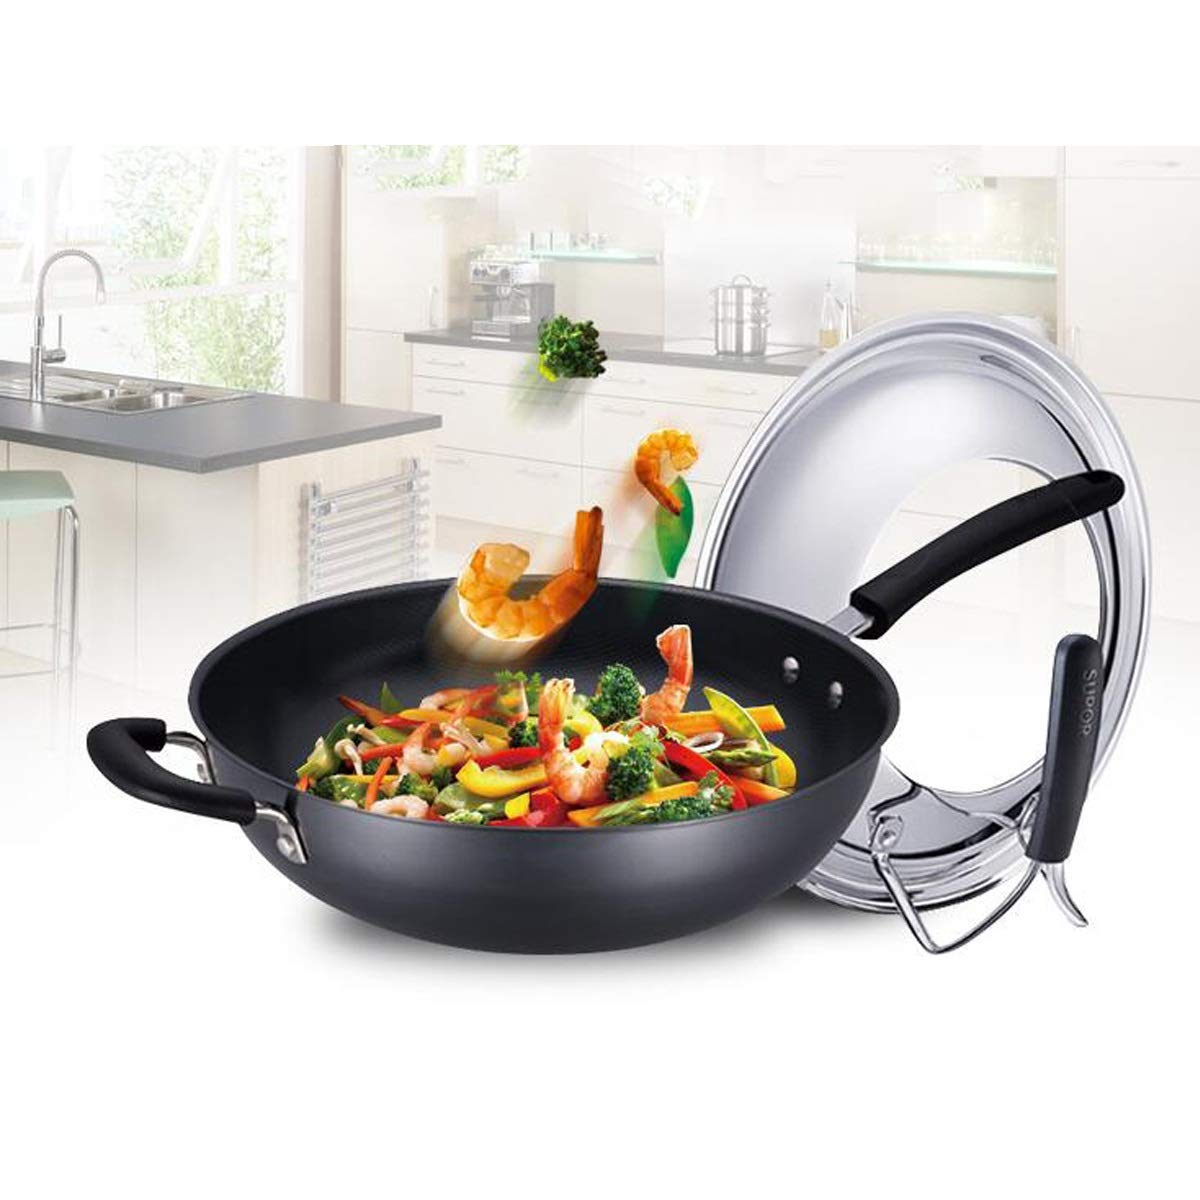 Wok, 32cm Diameter Wok, Really Stainless Uncoated Detachable Lid And Non-standing Lid Healthy Iron Pan, Black (Color : Black-A, Size : A1-32CM) by TONGBOSHI (Image #2)